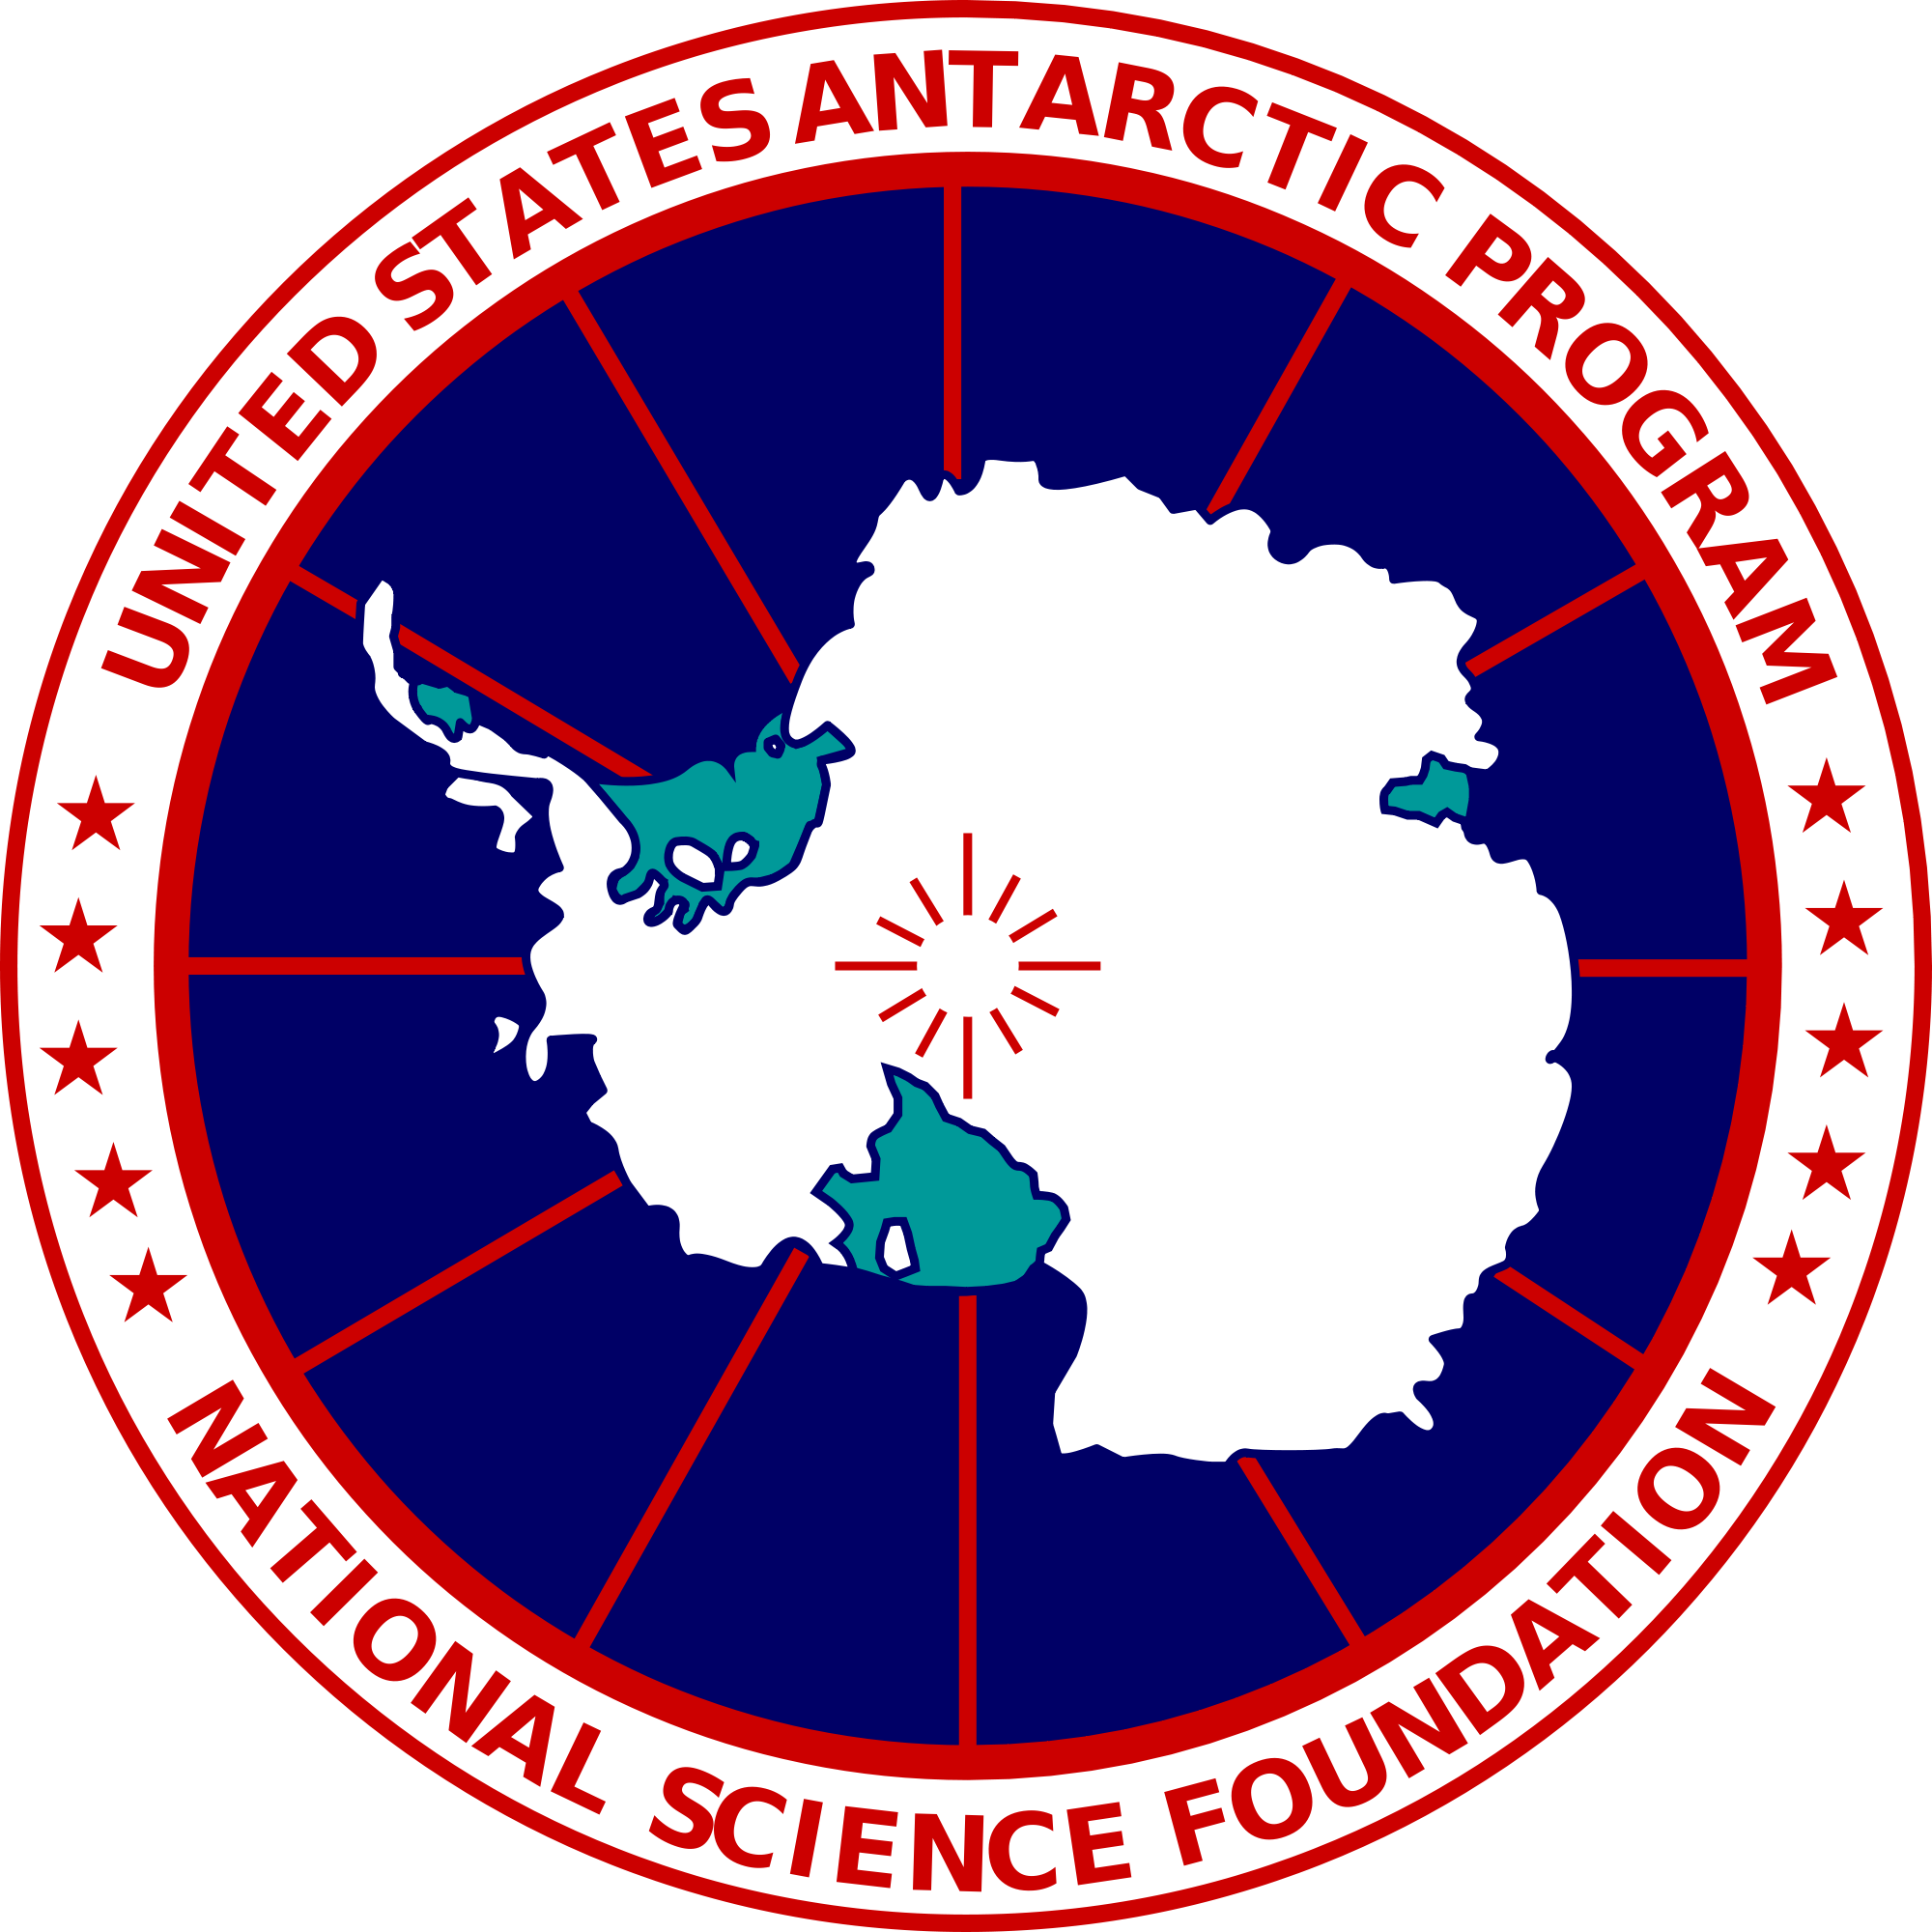 png free library Svg program. File usantarcticprogram logo wikimedia